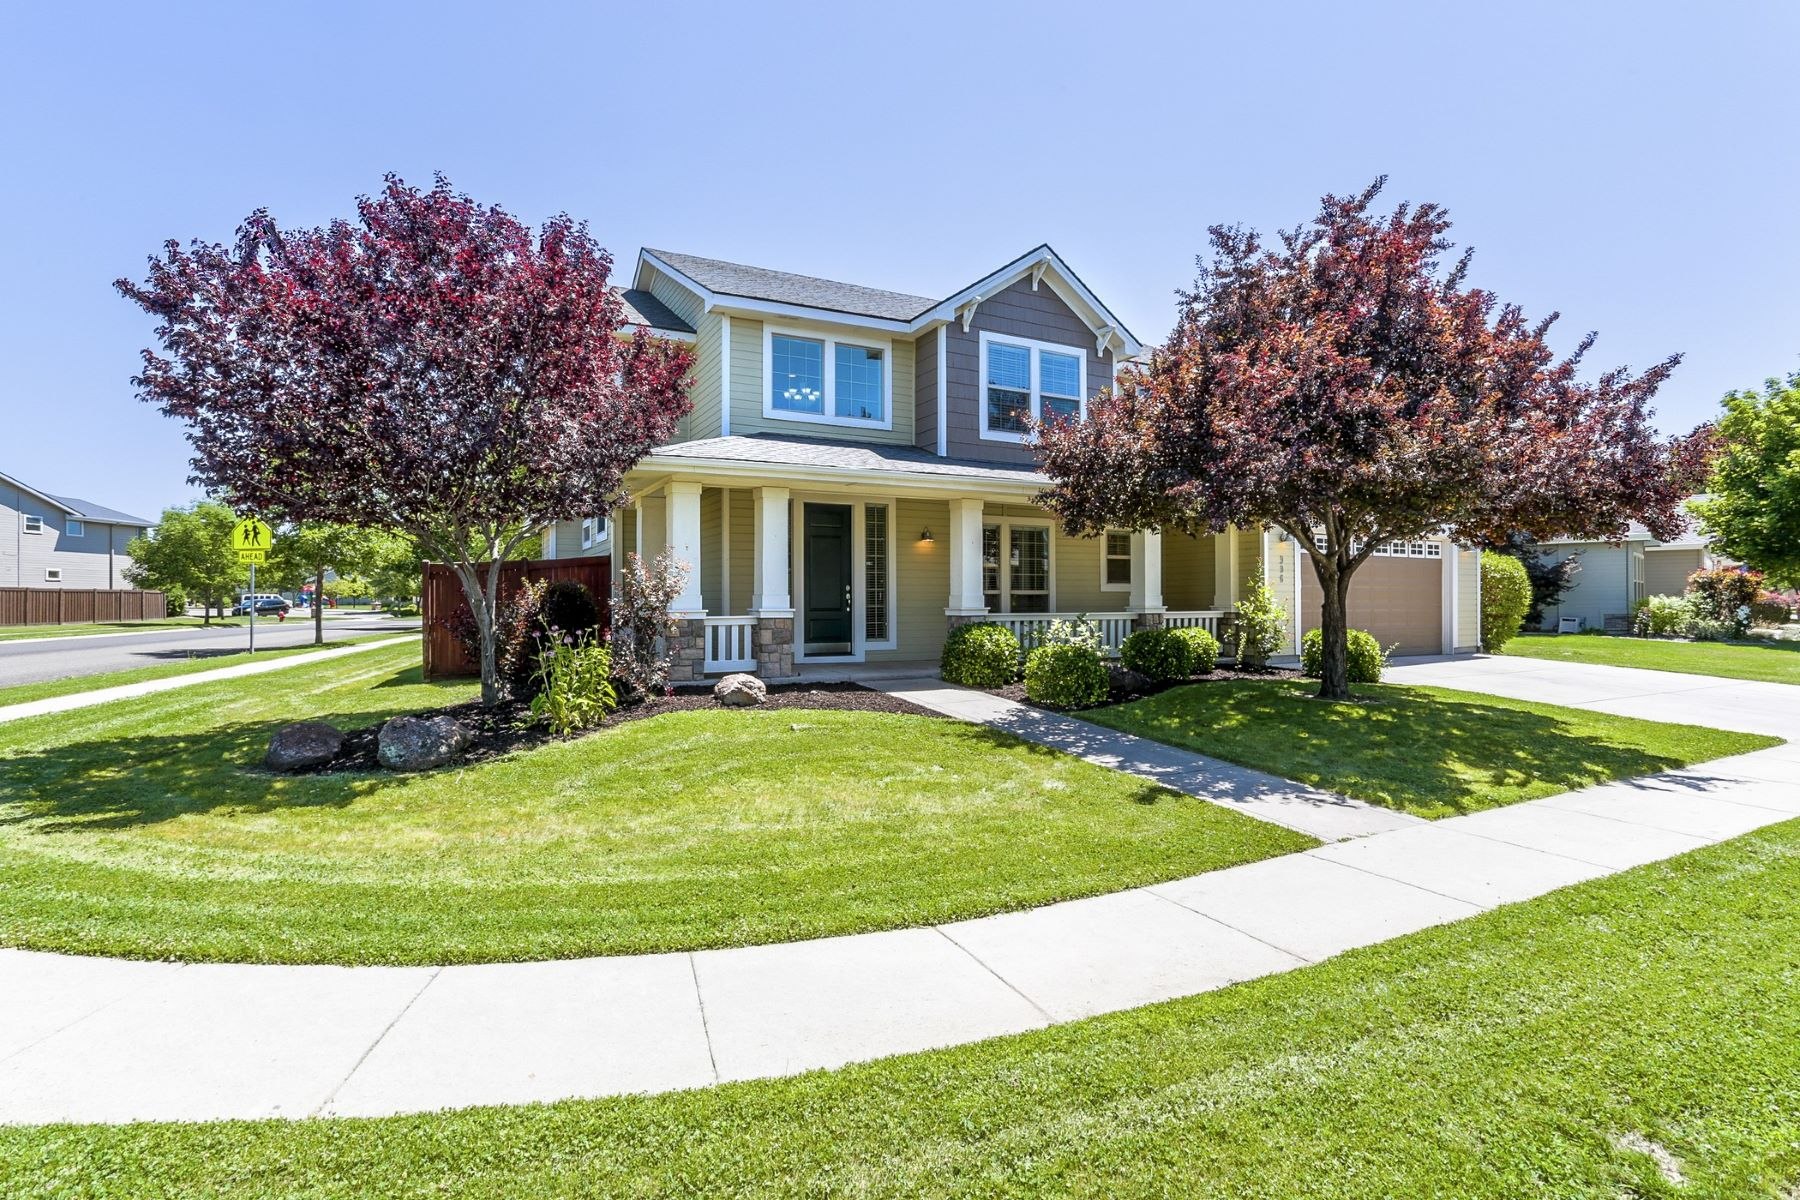 Single Family Homes for Active at 996 Cagney Dr, Meridian 996 W Cagney Dr Meridian, Idaho 83646 United States